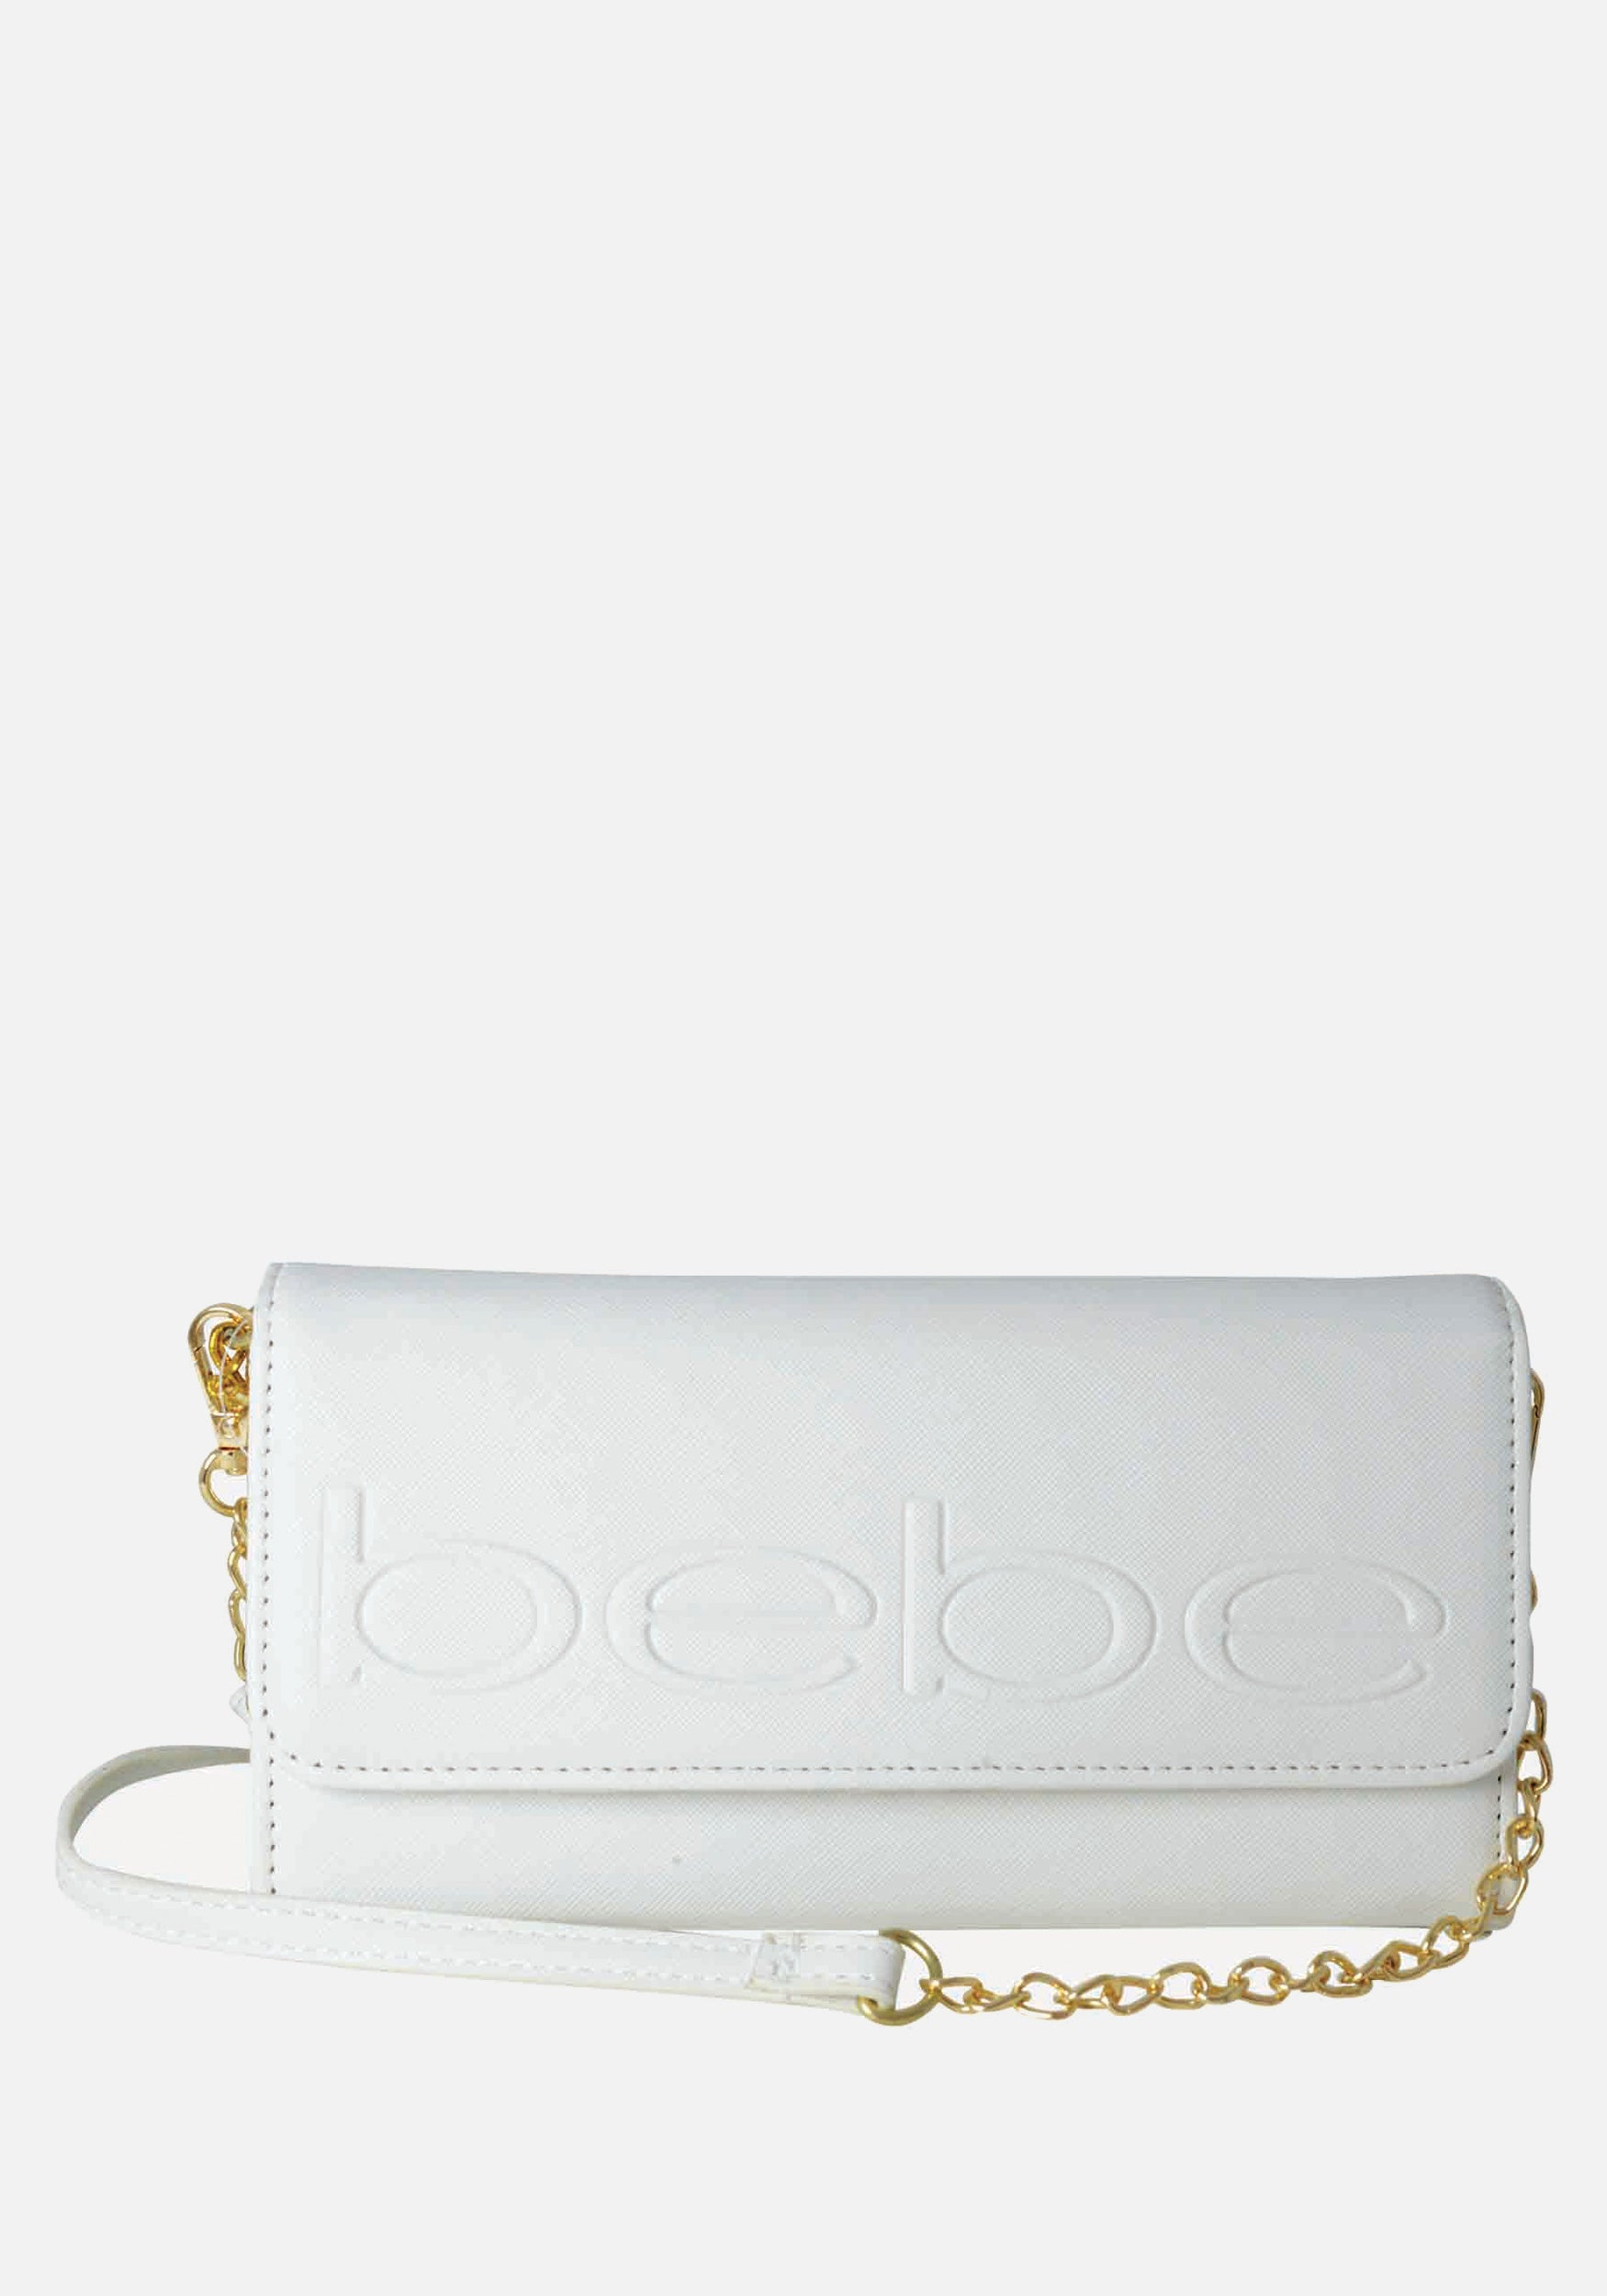 Bebe Women's Lila Phone Wallet Crossbody in Off White Polyester